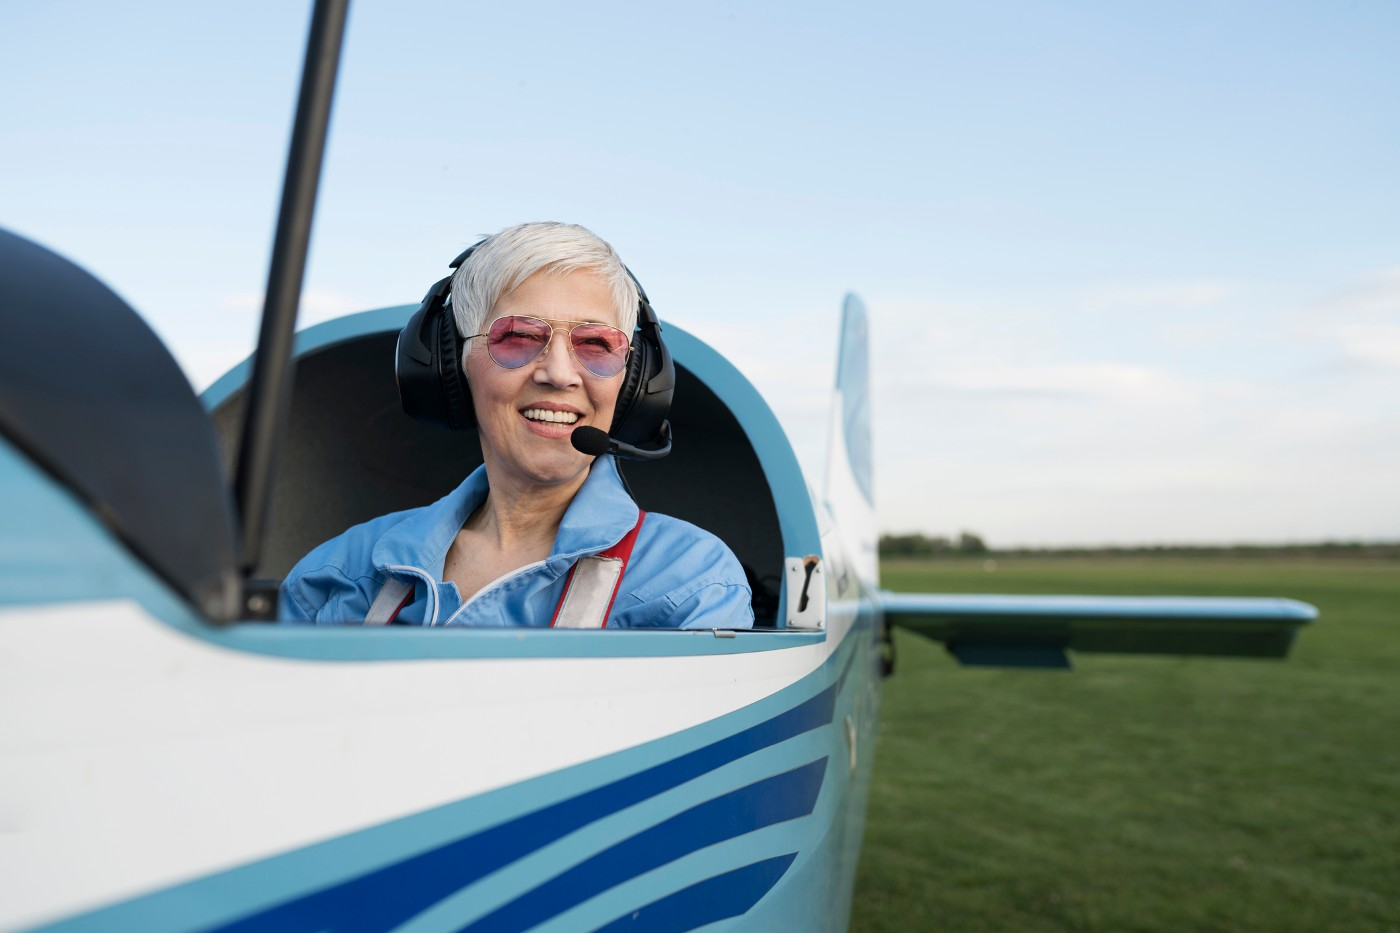 https://tickertapecdn.tdameritrade.com/assets/images/pages/md/Older white woman in propeller plane: Flying solo with finances